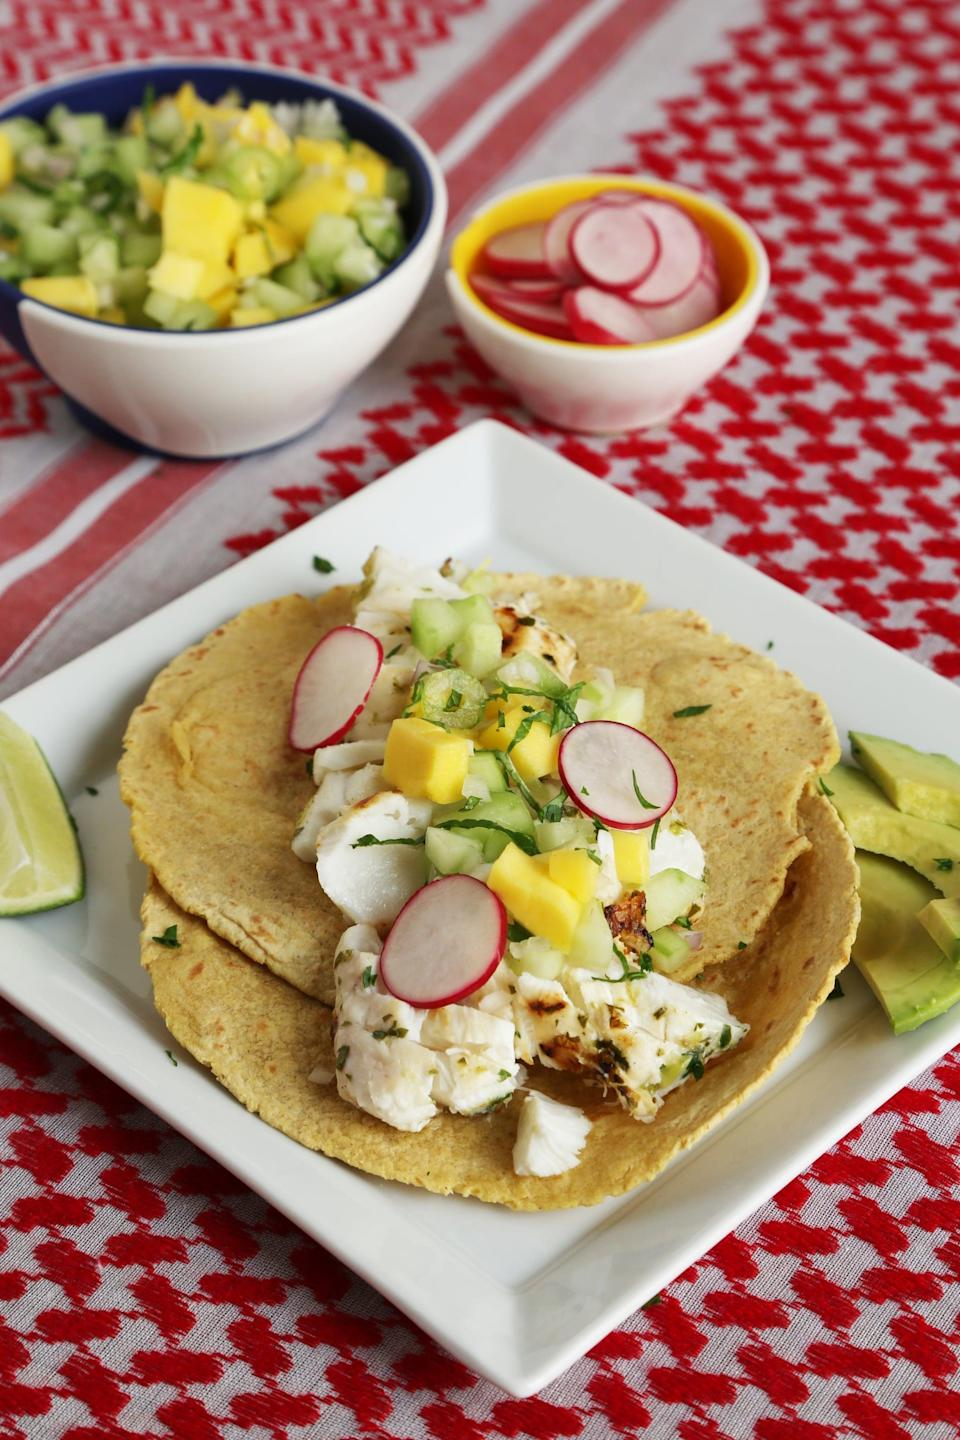 "<p>Choose a fish like halibut, sea bass, or striped bass, and marinate it for 15 minutes in lime juice and oil, and you're on your way to heavenly homemade fish tacos. </p> <p><strong>Get the recipe:</strong> <a href=""https://www.popsugar.com/food/Grilled-Fish-Tacos-Recipe-34643553"" class=""link rapid-noclick-resp"" rel=""nofollow noopener"" target=""_blank"" data-ylk=""slk:grilled fish tacos"">grilled fish tacos</a></p>"